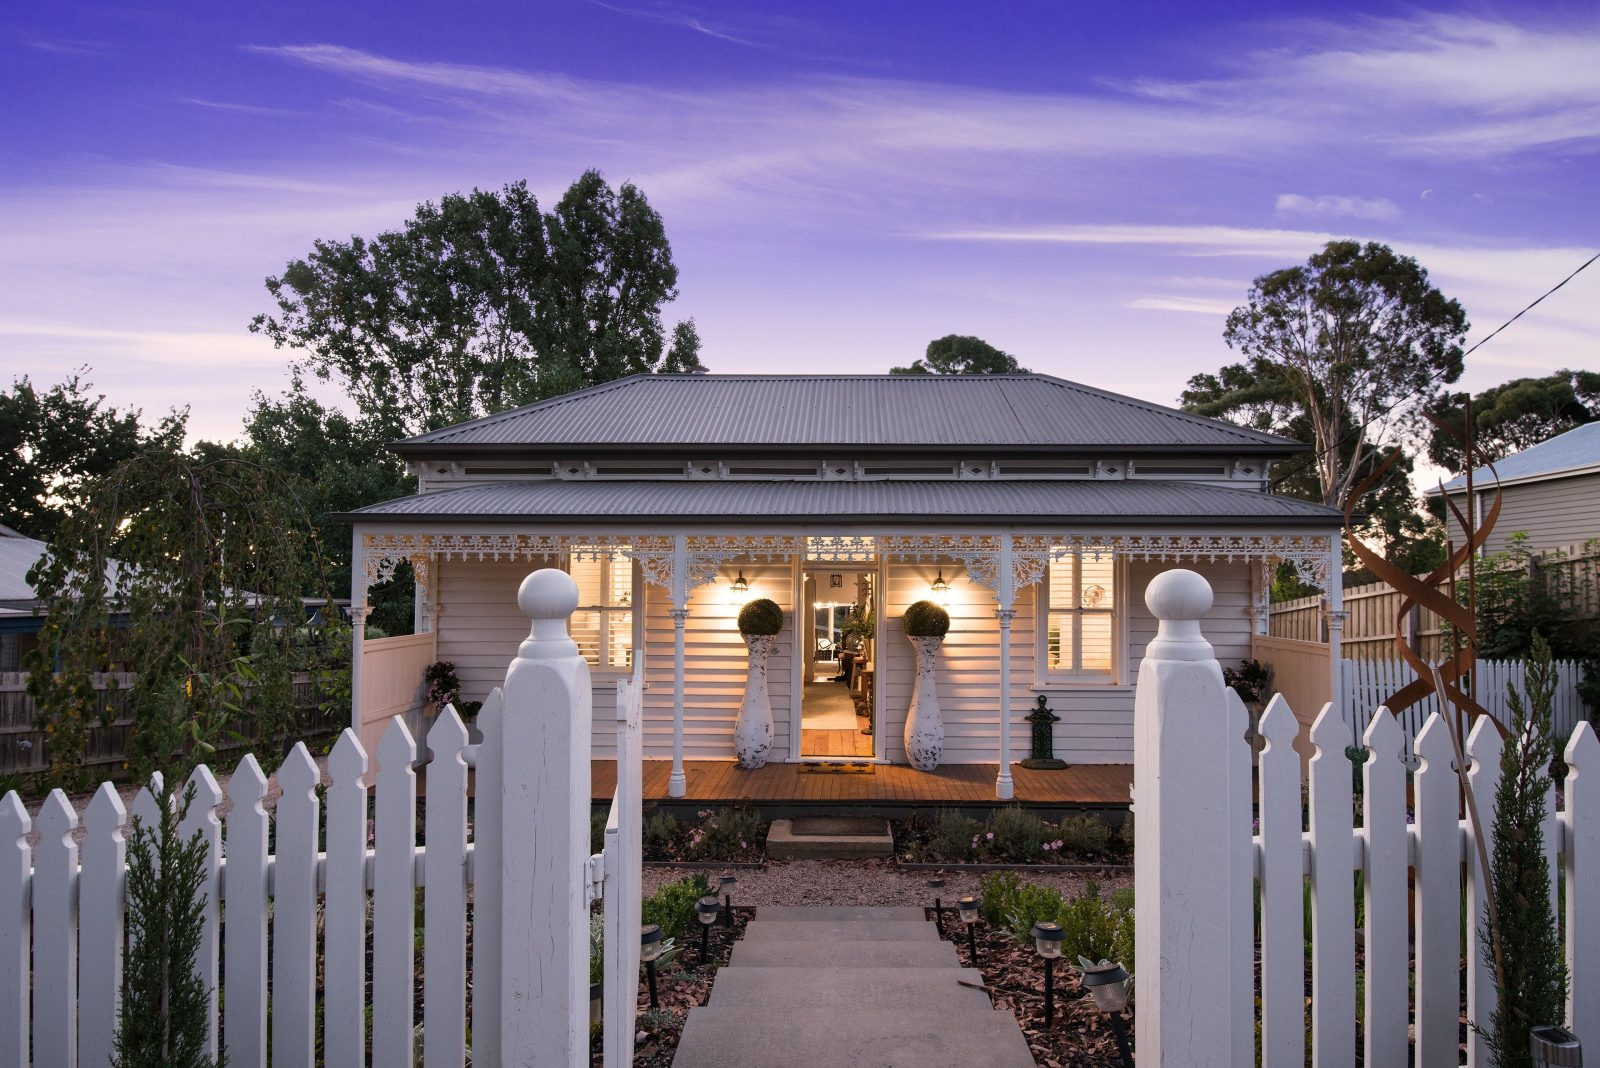 The Luxe Daylesford